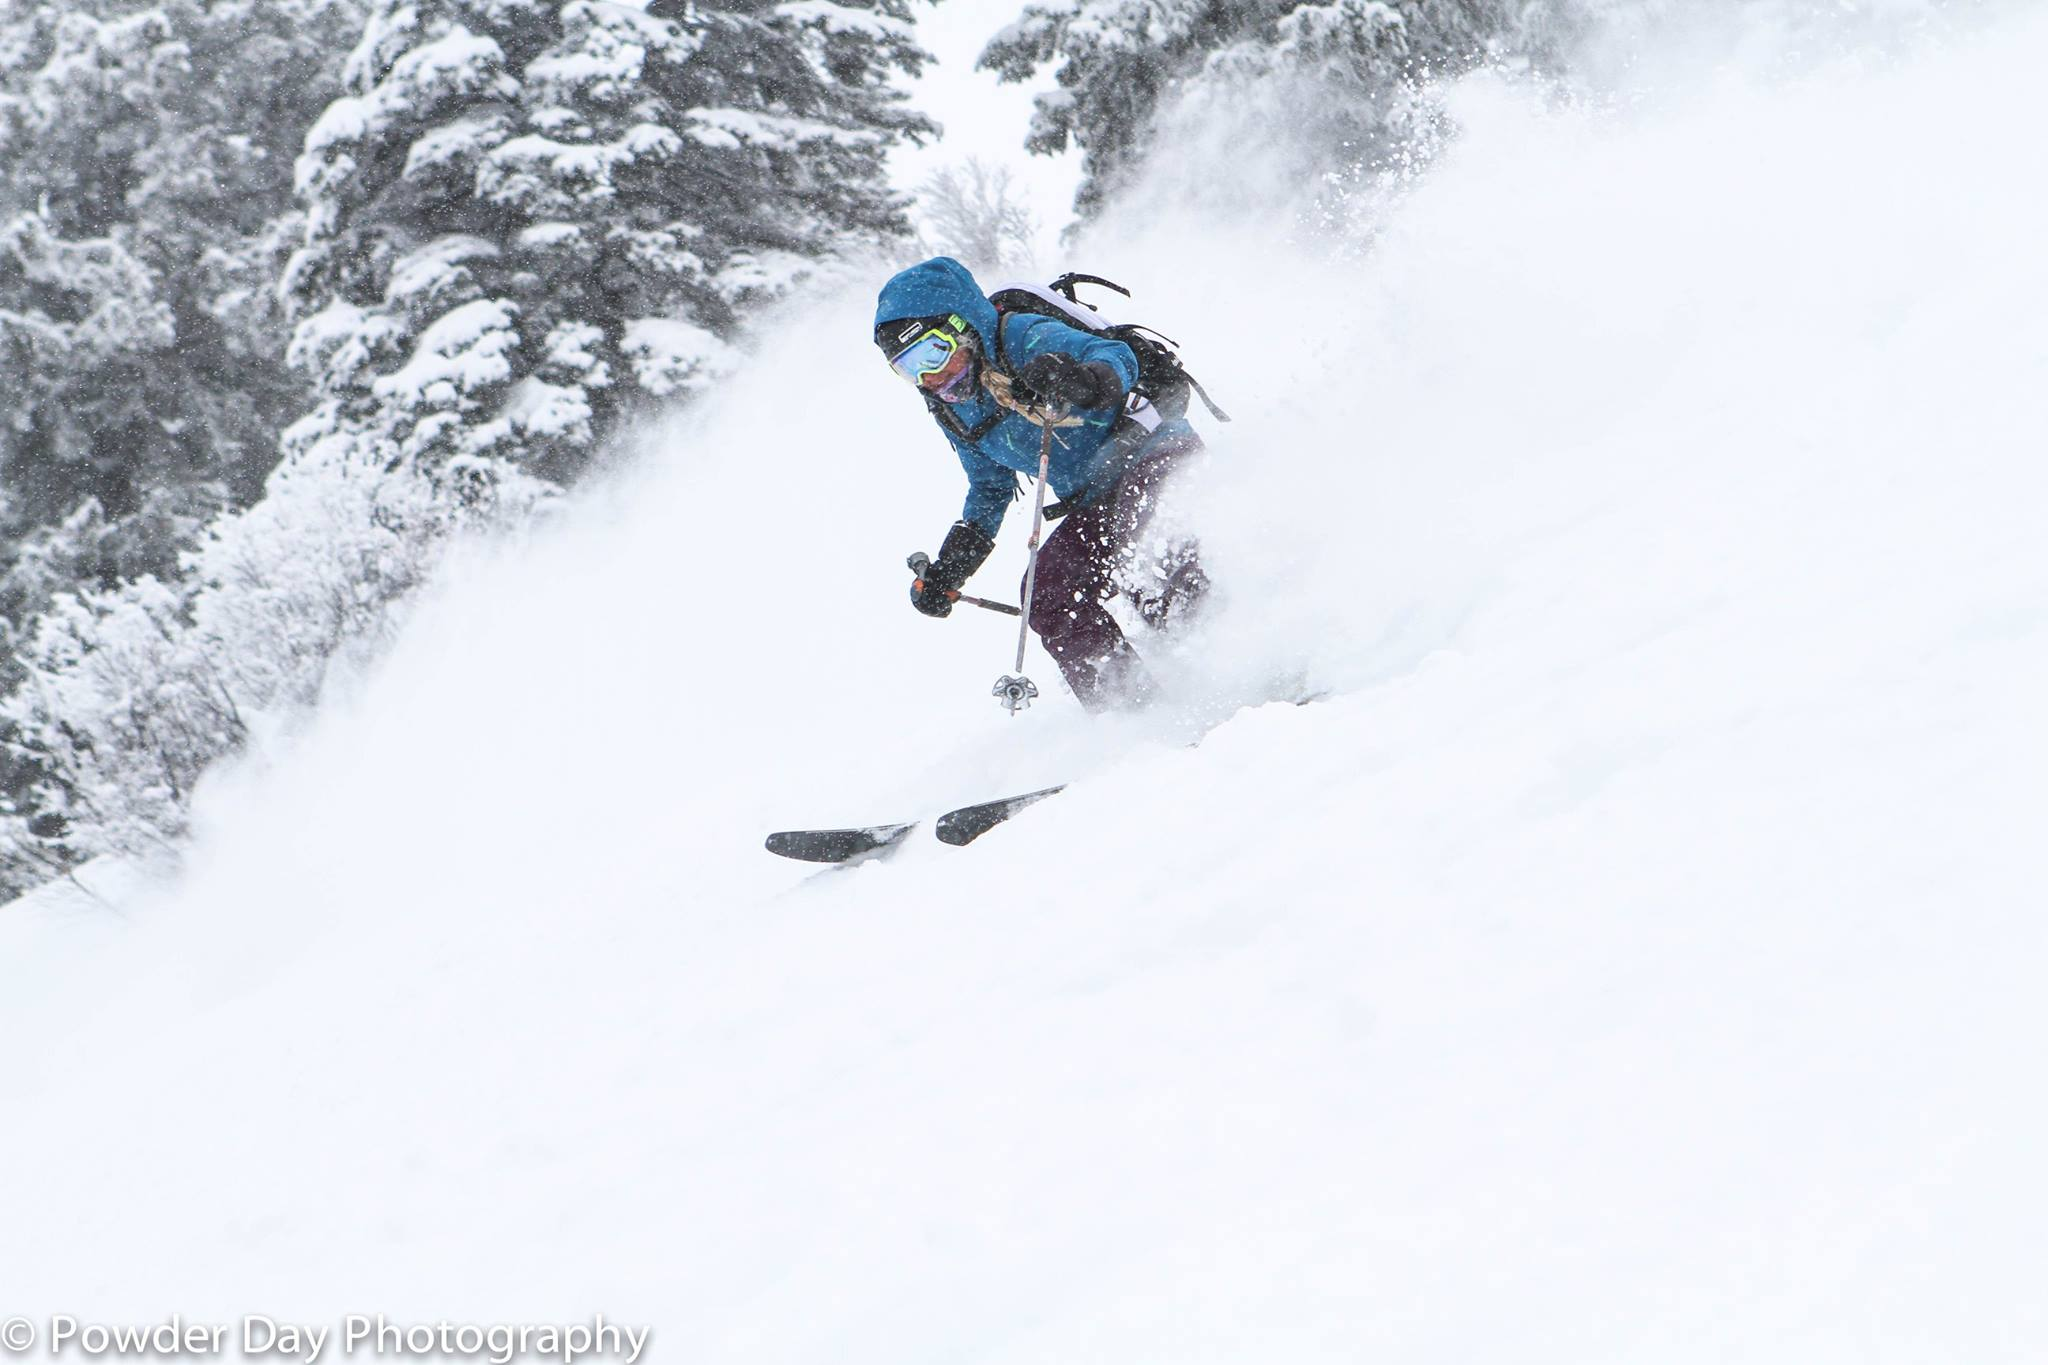 Slashing POW at Targhee. PC: Powder Day Photography